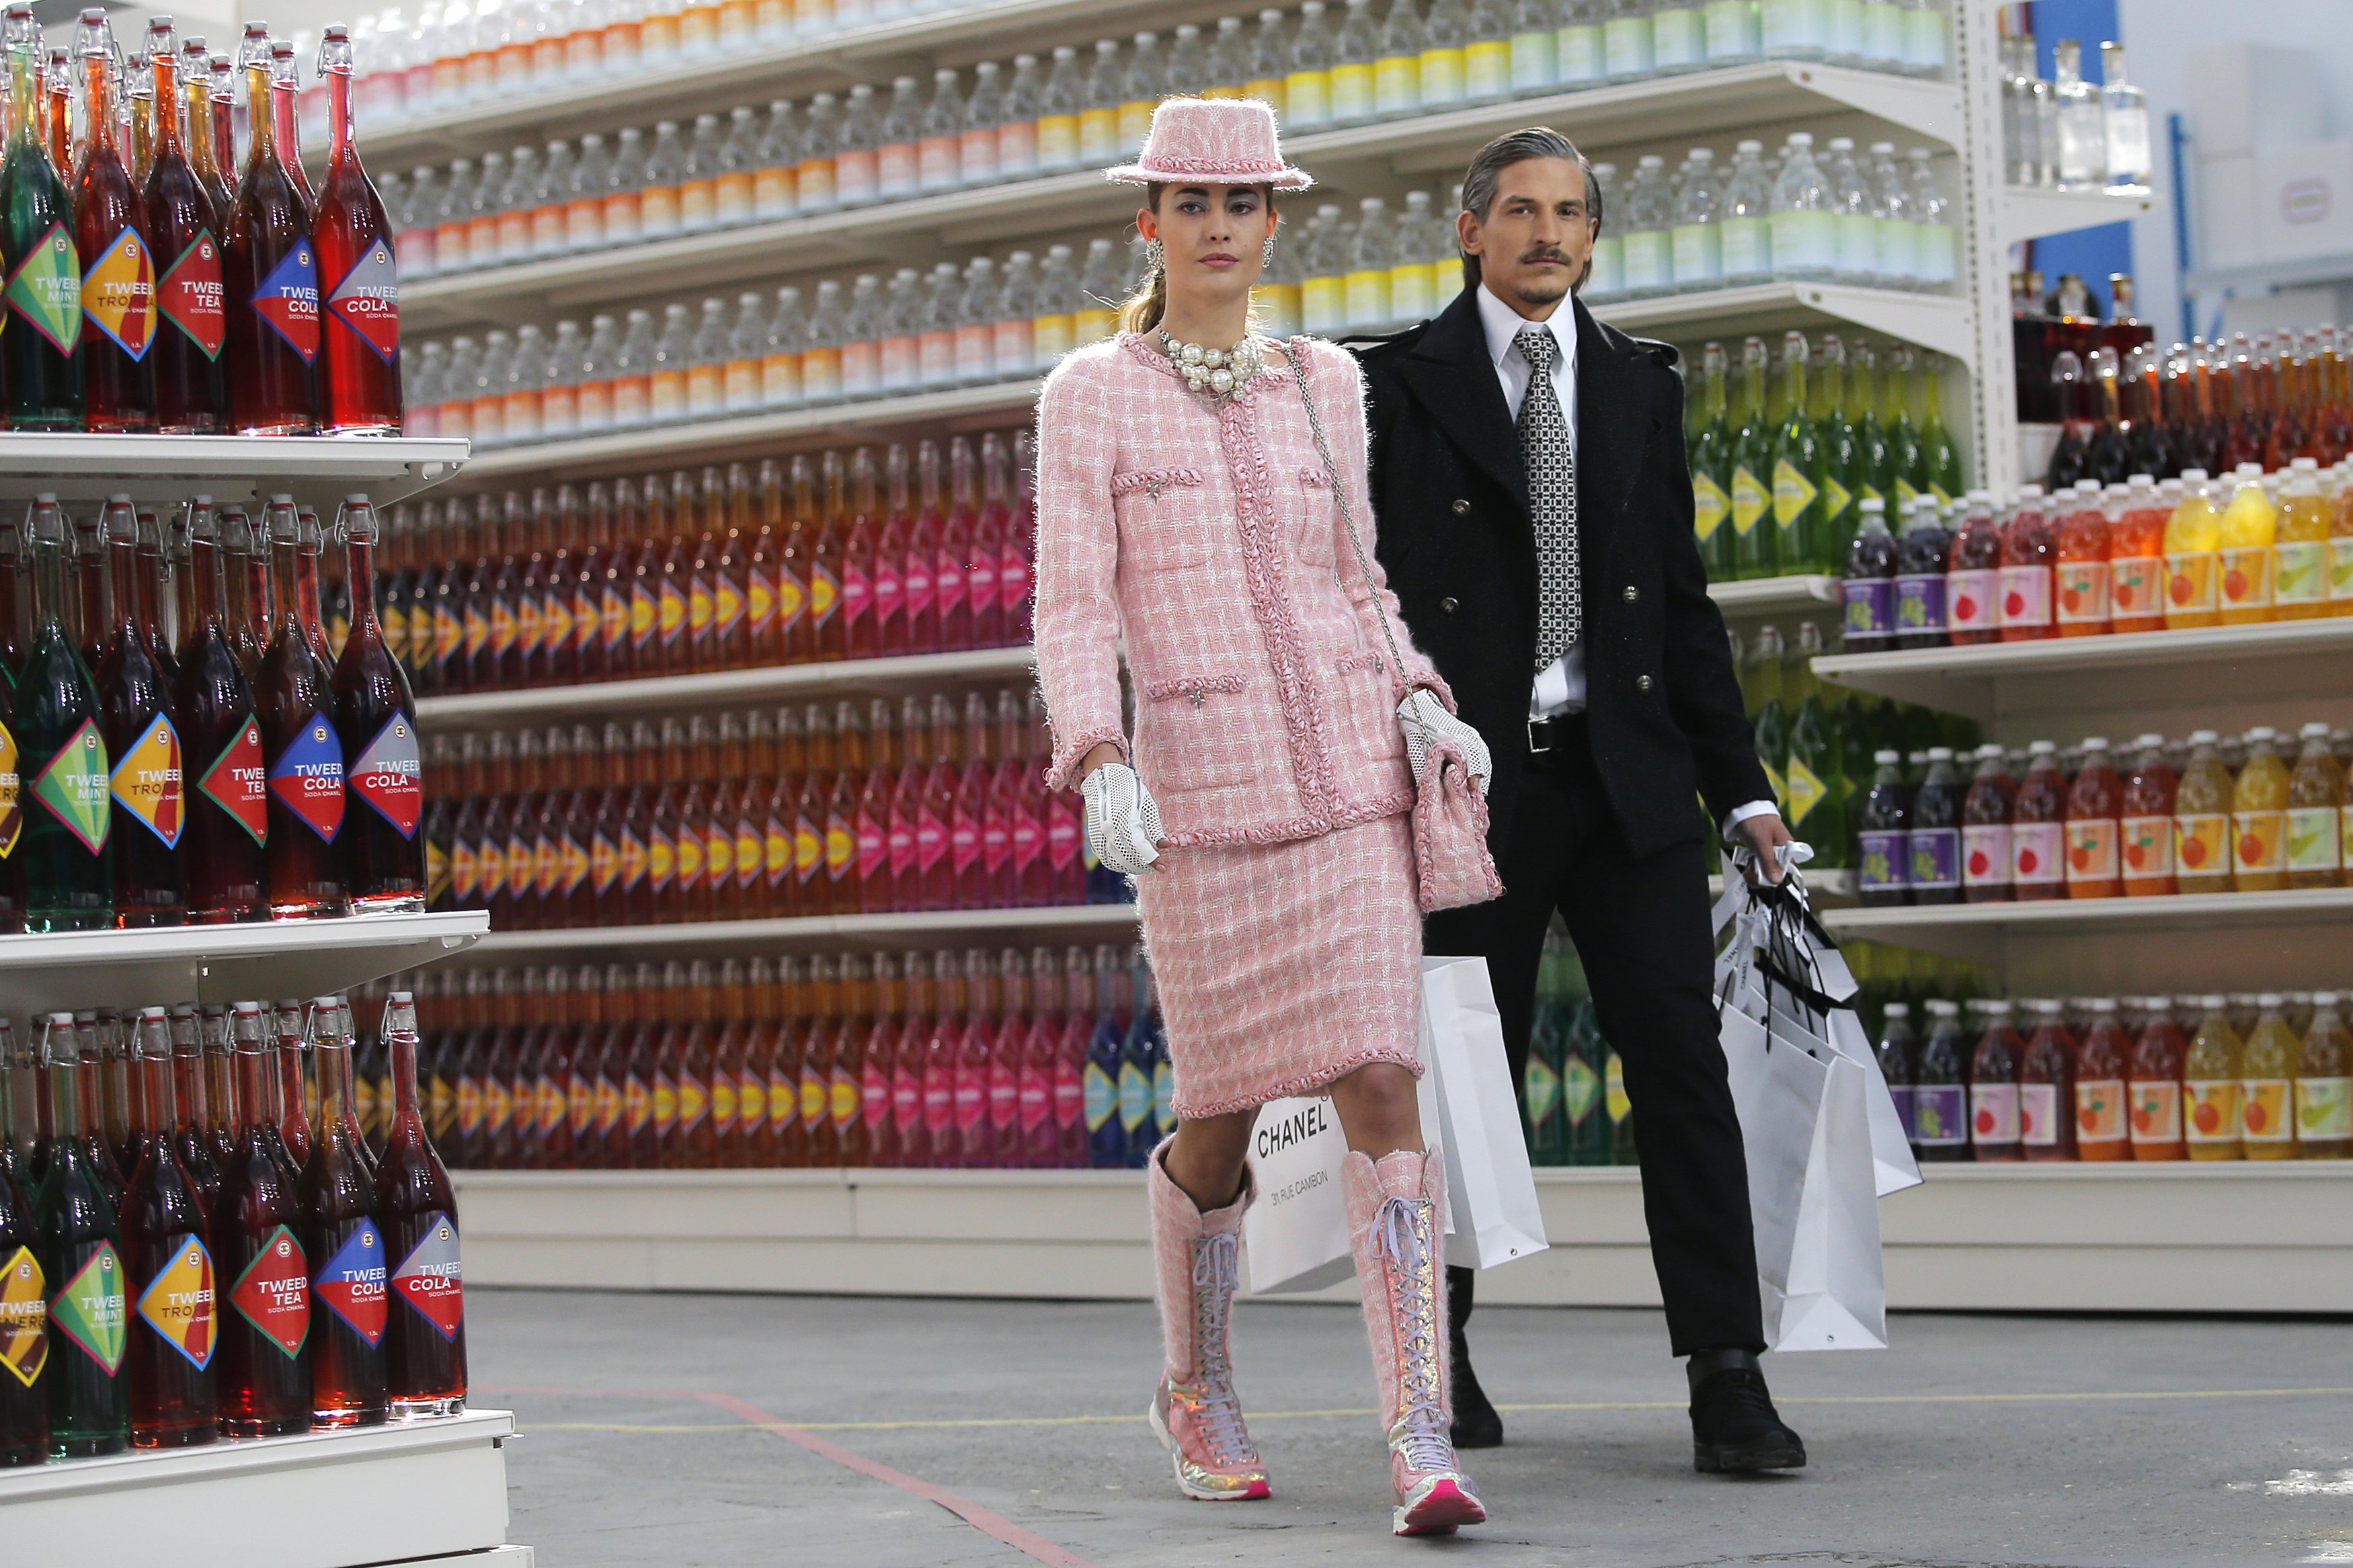 """Models present creations by German designer Karl Lagerfeld as part of his Fall/Winter 2014-2015 women's ready-to-wear collection for French fashion house Chanel at the Grand Palais transformed into a """"Chanel Shopping Center"""" during Paris Fashion Week March 4, 2014."""